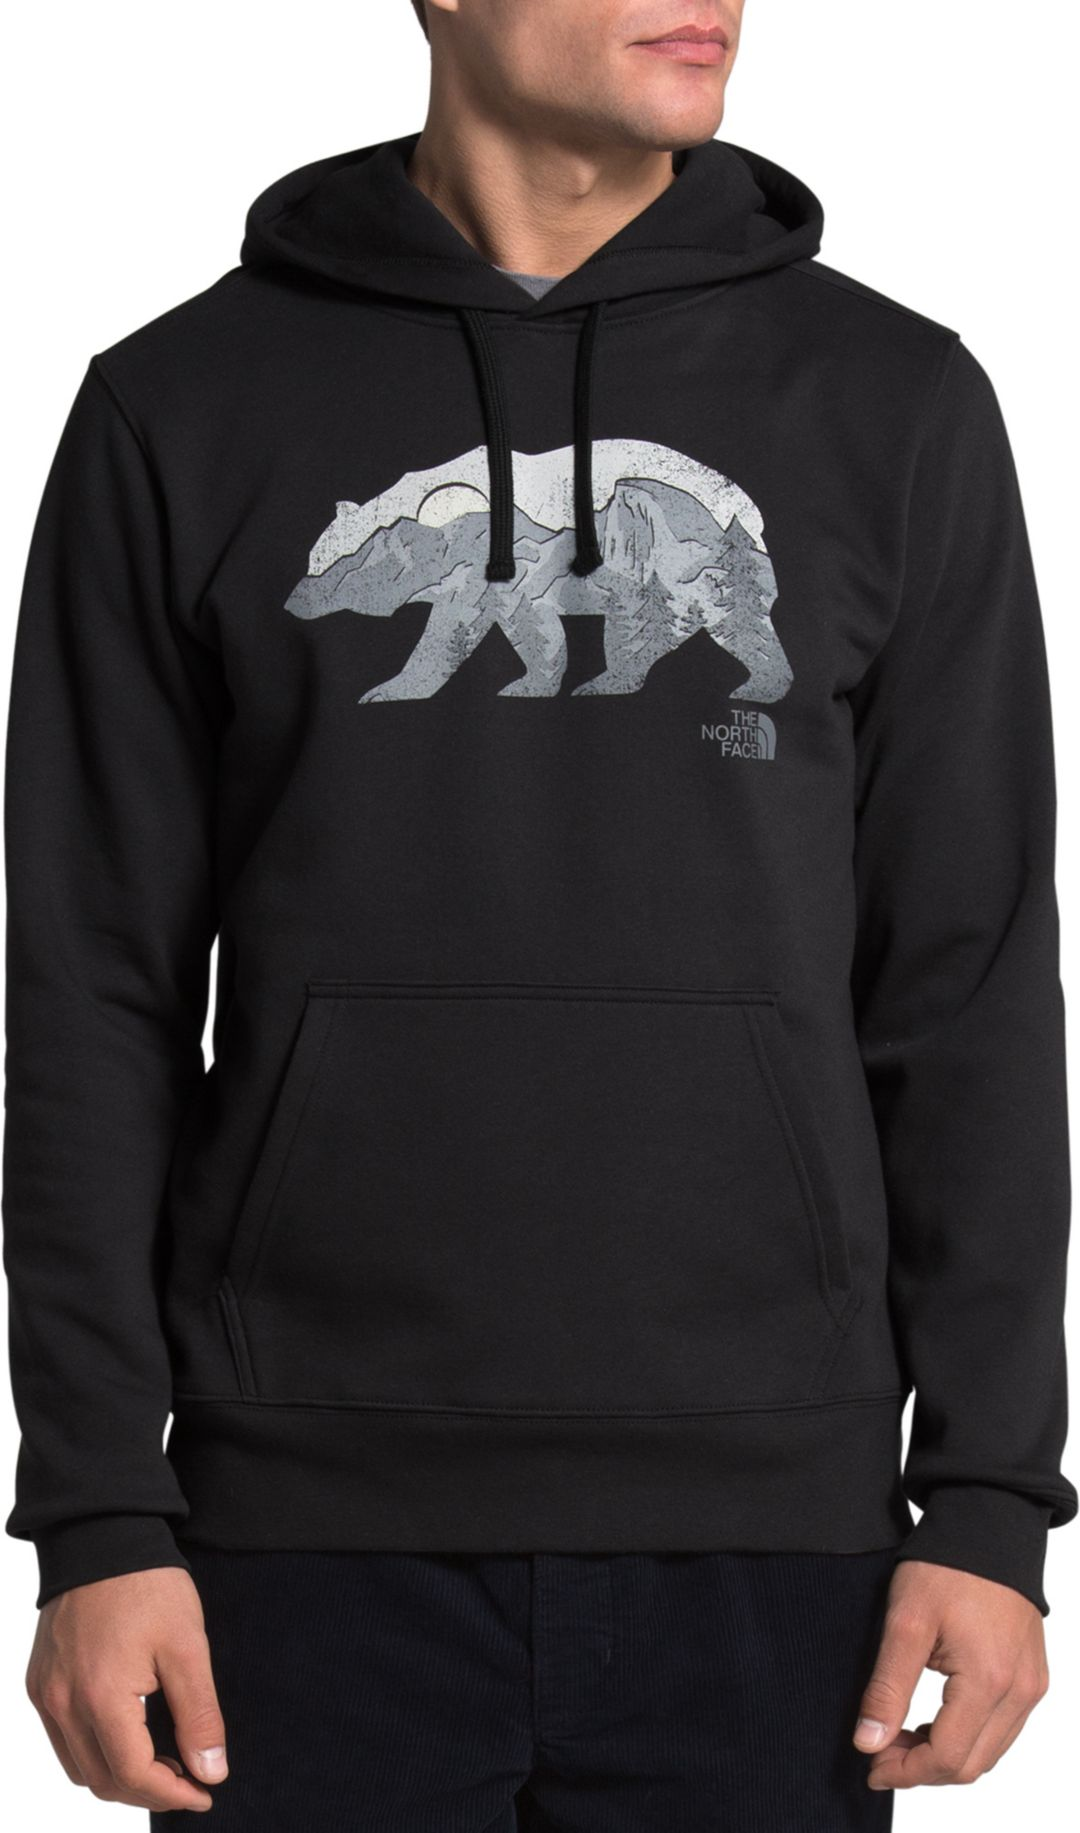 9fc426d8a The North Face Men's Bearscape Hoodie